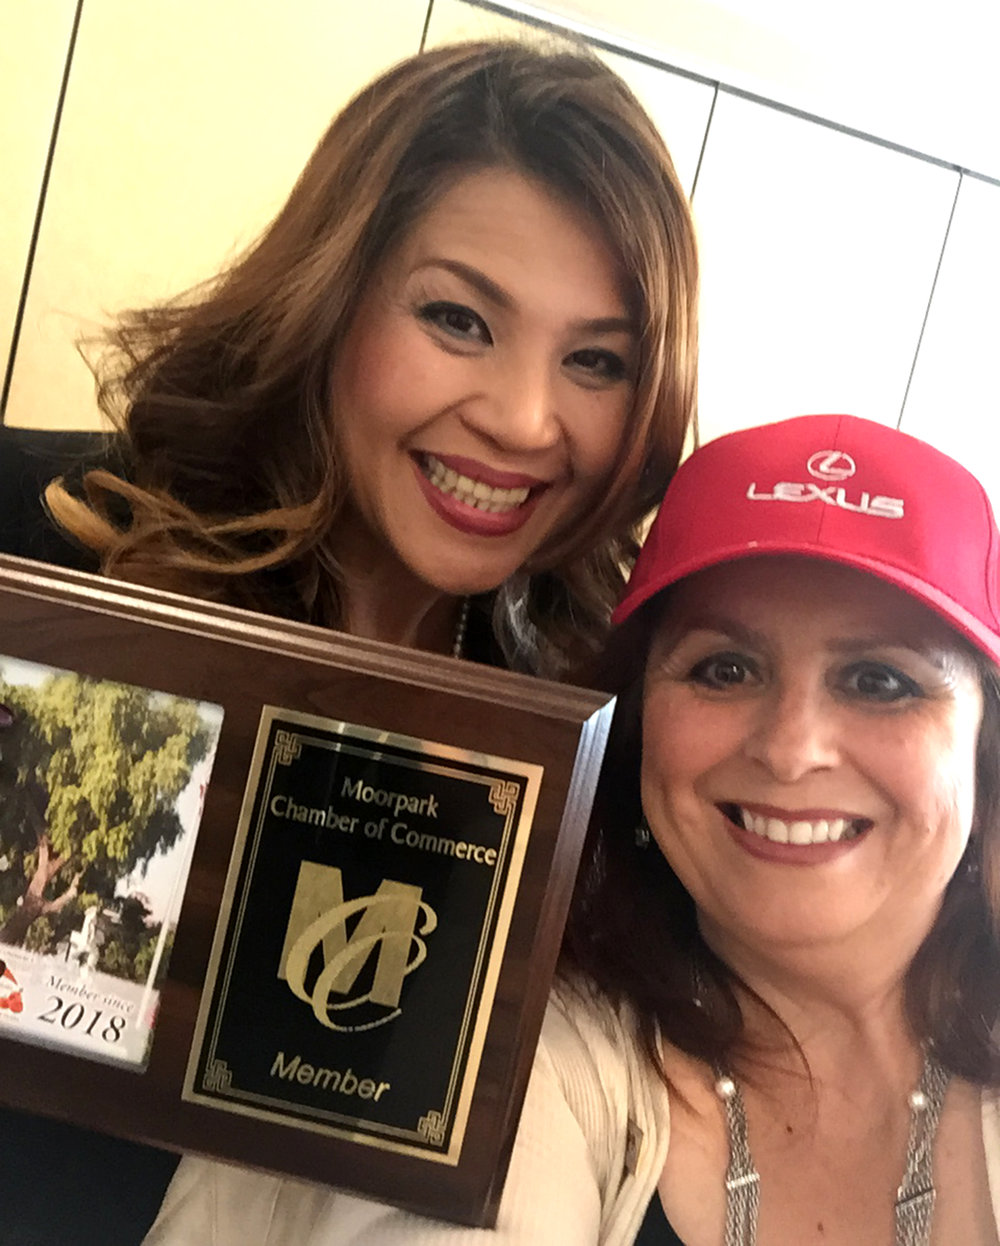 Along with becoming a Chamber Member, Theresa also won the meeting's raffle prize. Pictured left to right is Anne Marie Zielsdorf of Lexus with Theresa Robledo wearing her new Lexus cap.